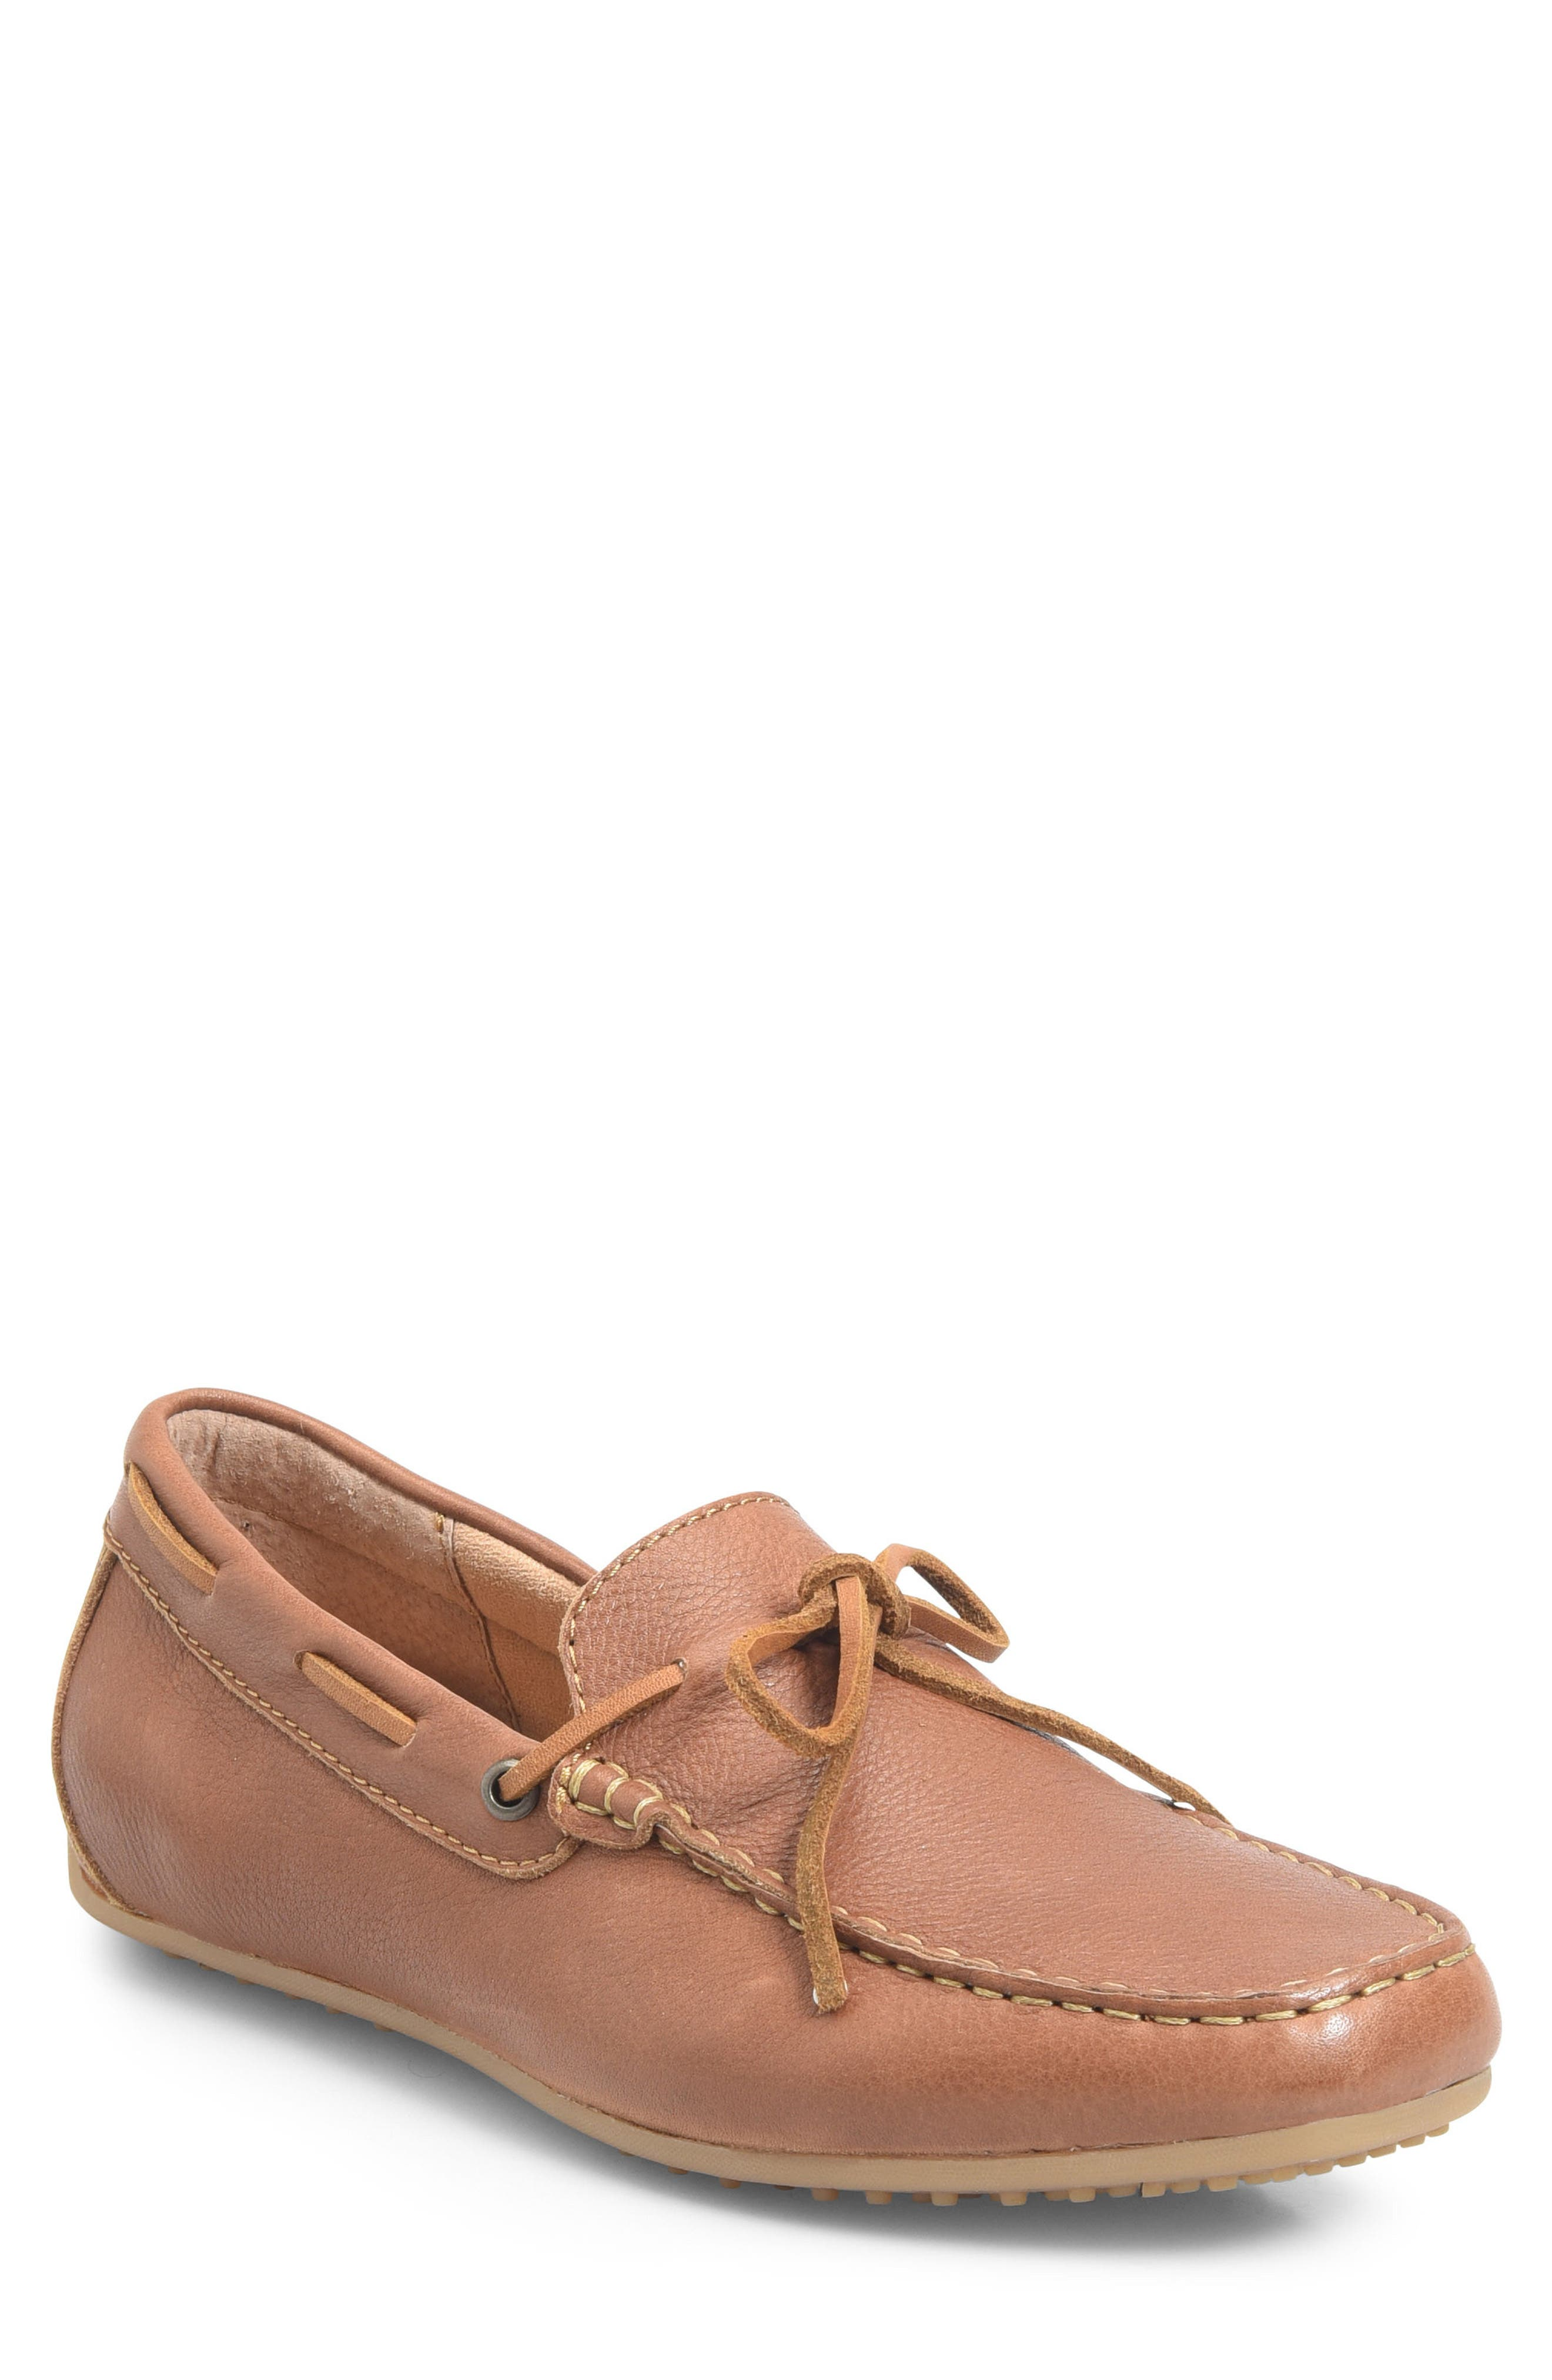 Virgo Driving Shoe,                         Main,                         color, BROWN LEATHER